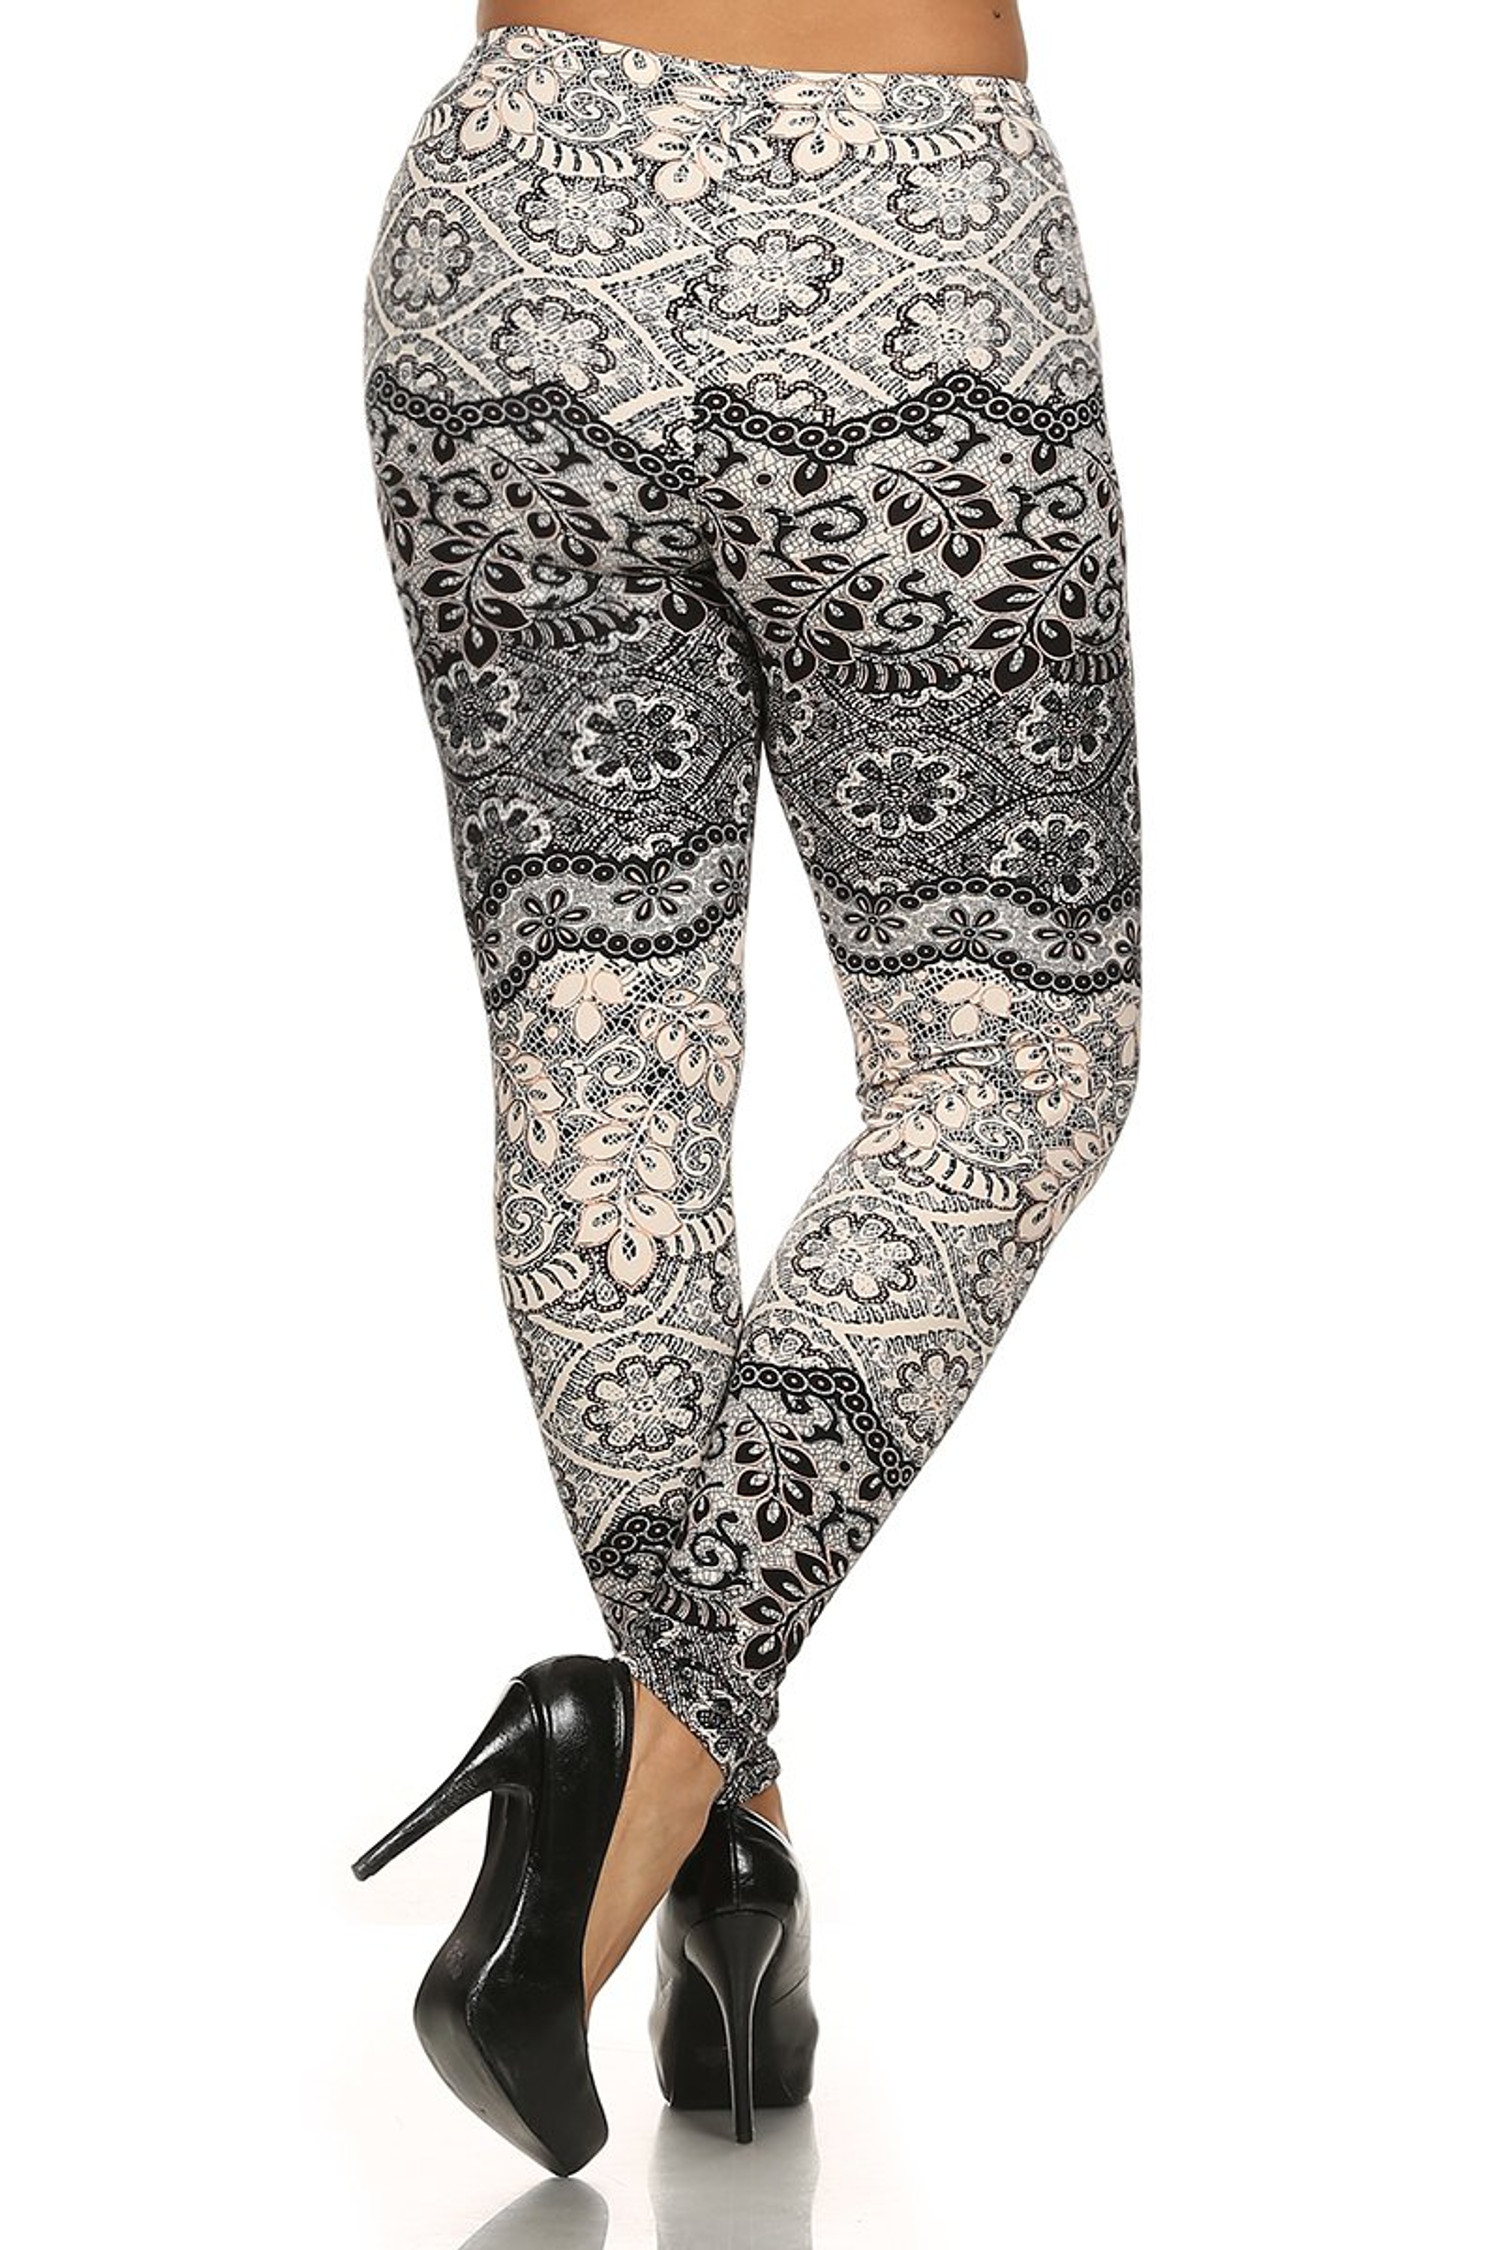 Brushed Exquisite Leaf Plus Size Leggings